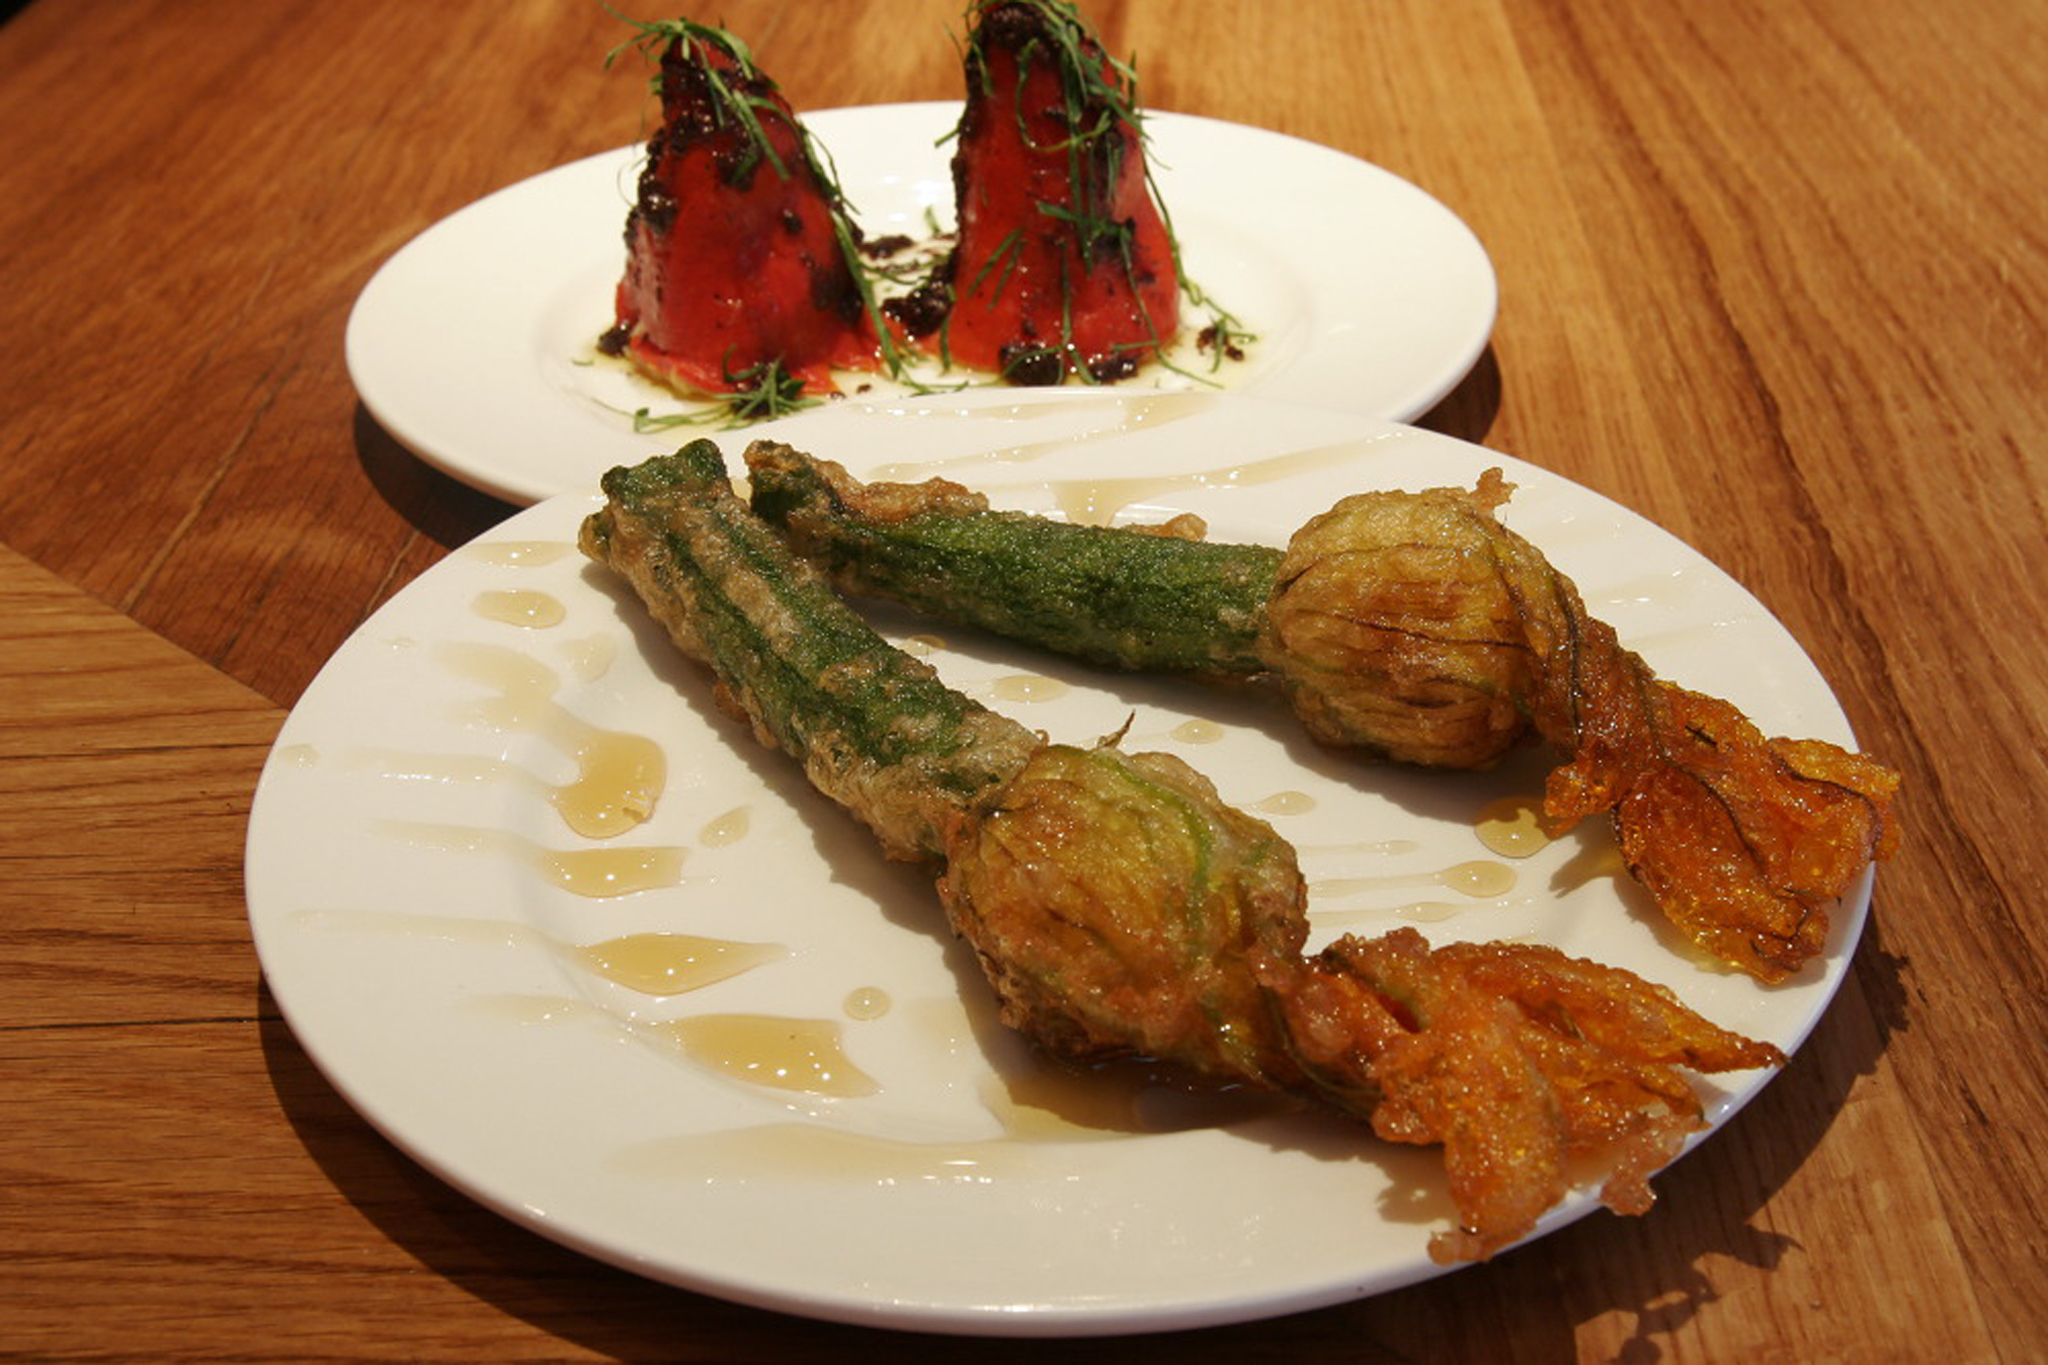 Goats' cheese-stuffed courgette flowers with lavender honey at Salt Yard